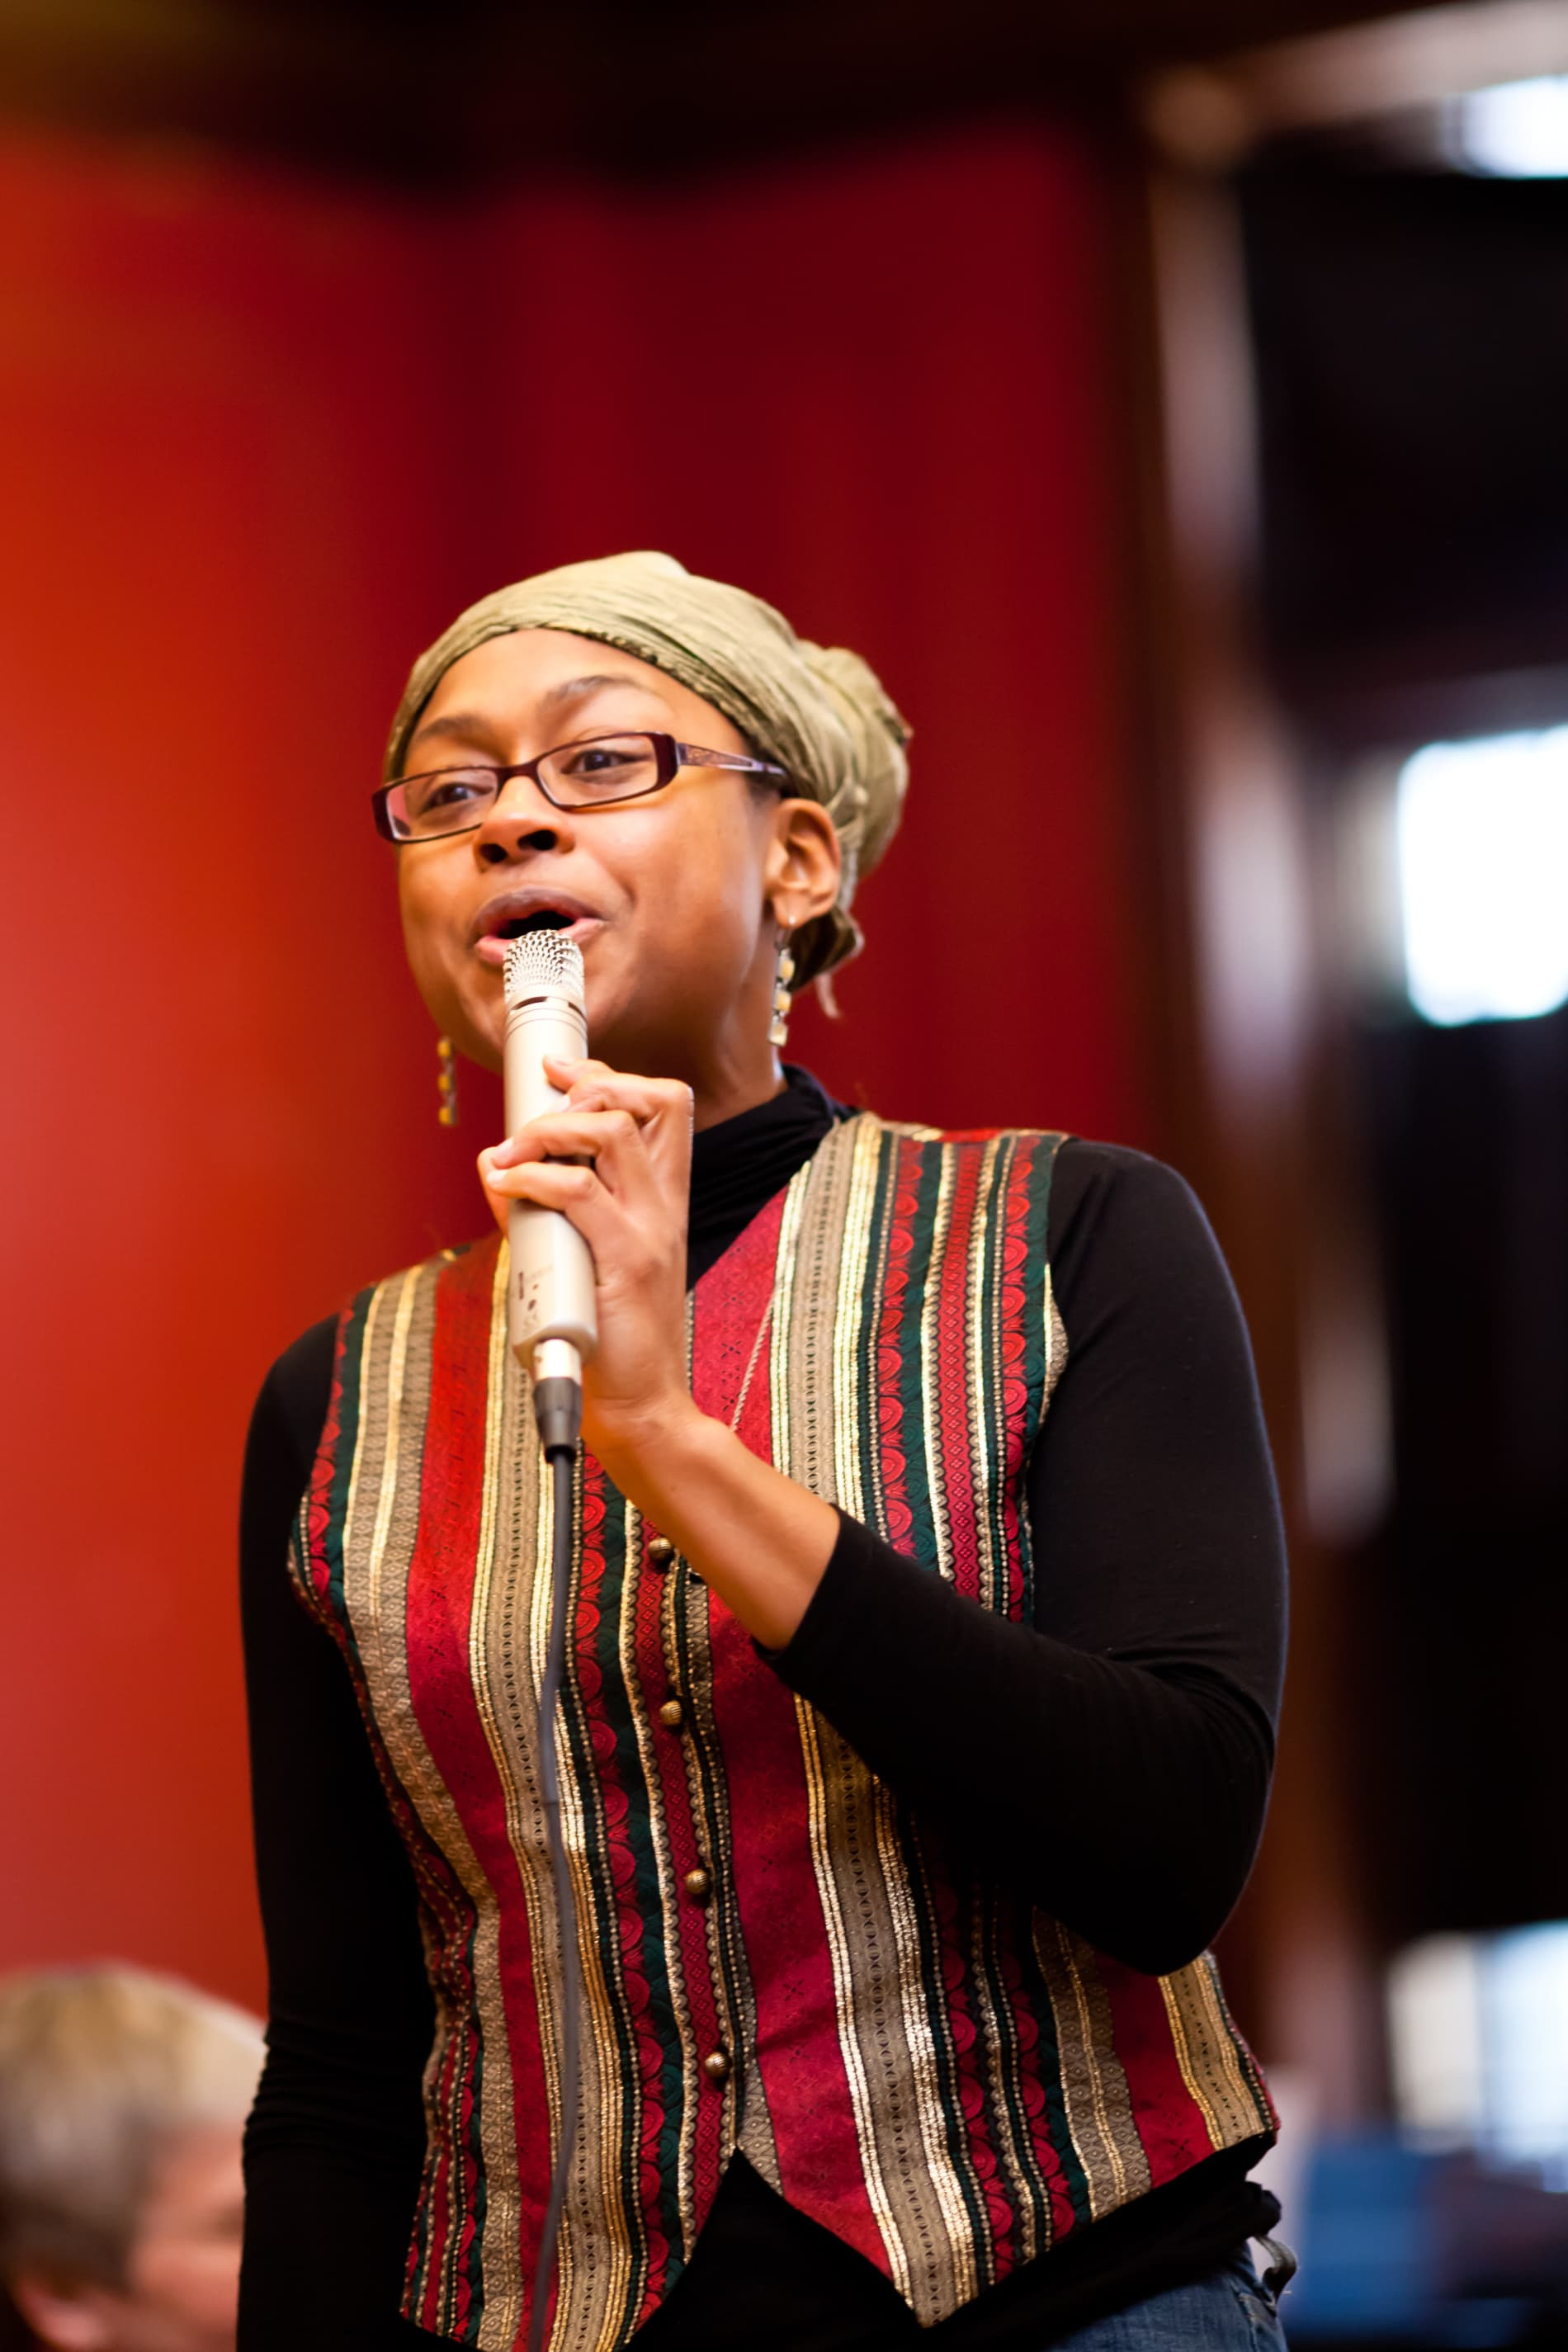 A Black woman speaks into a microphone